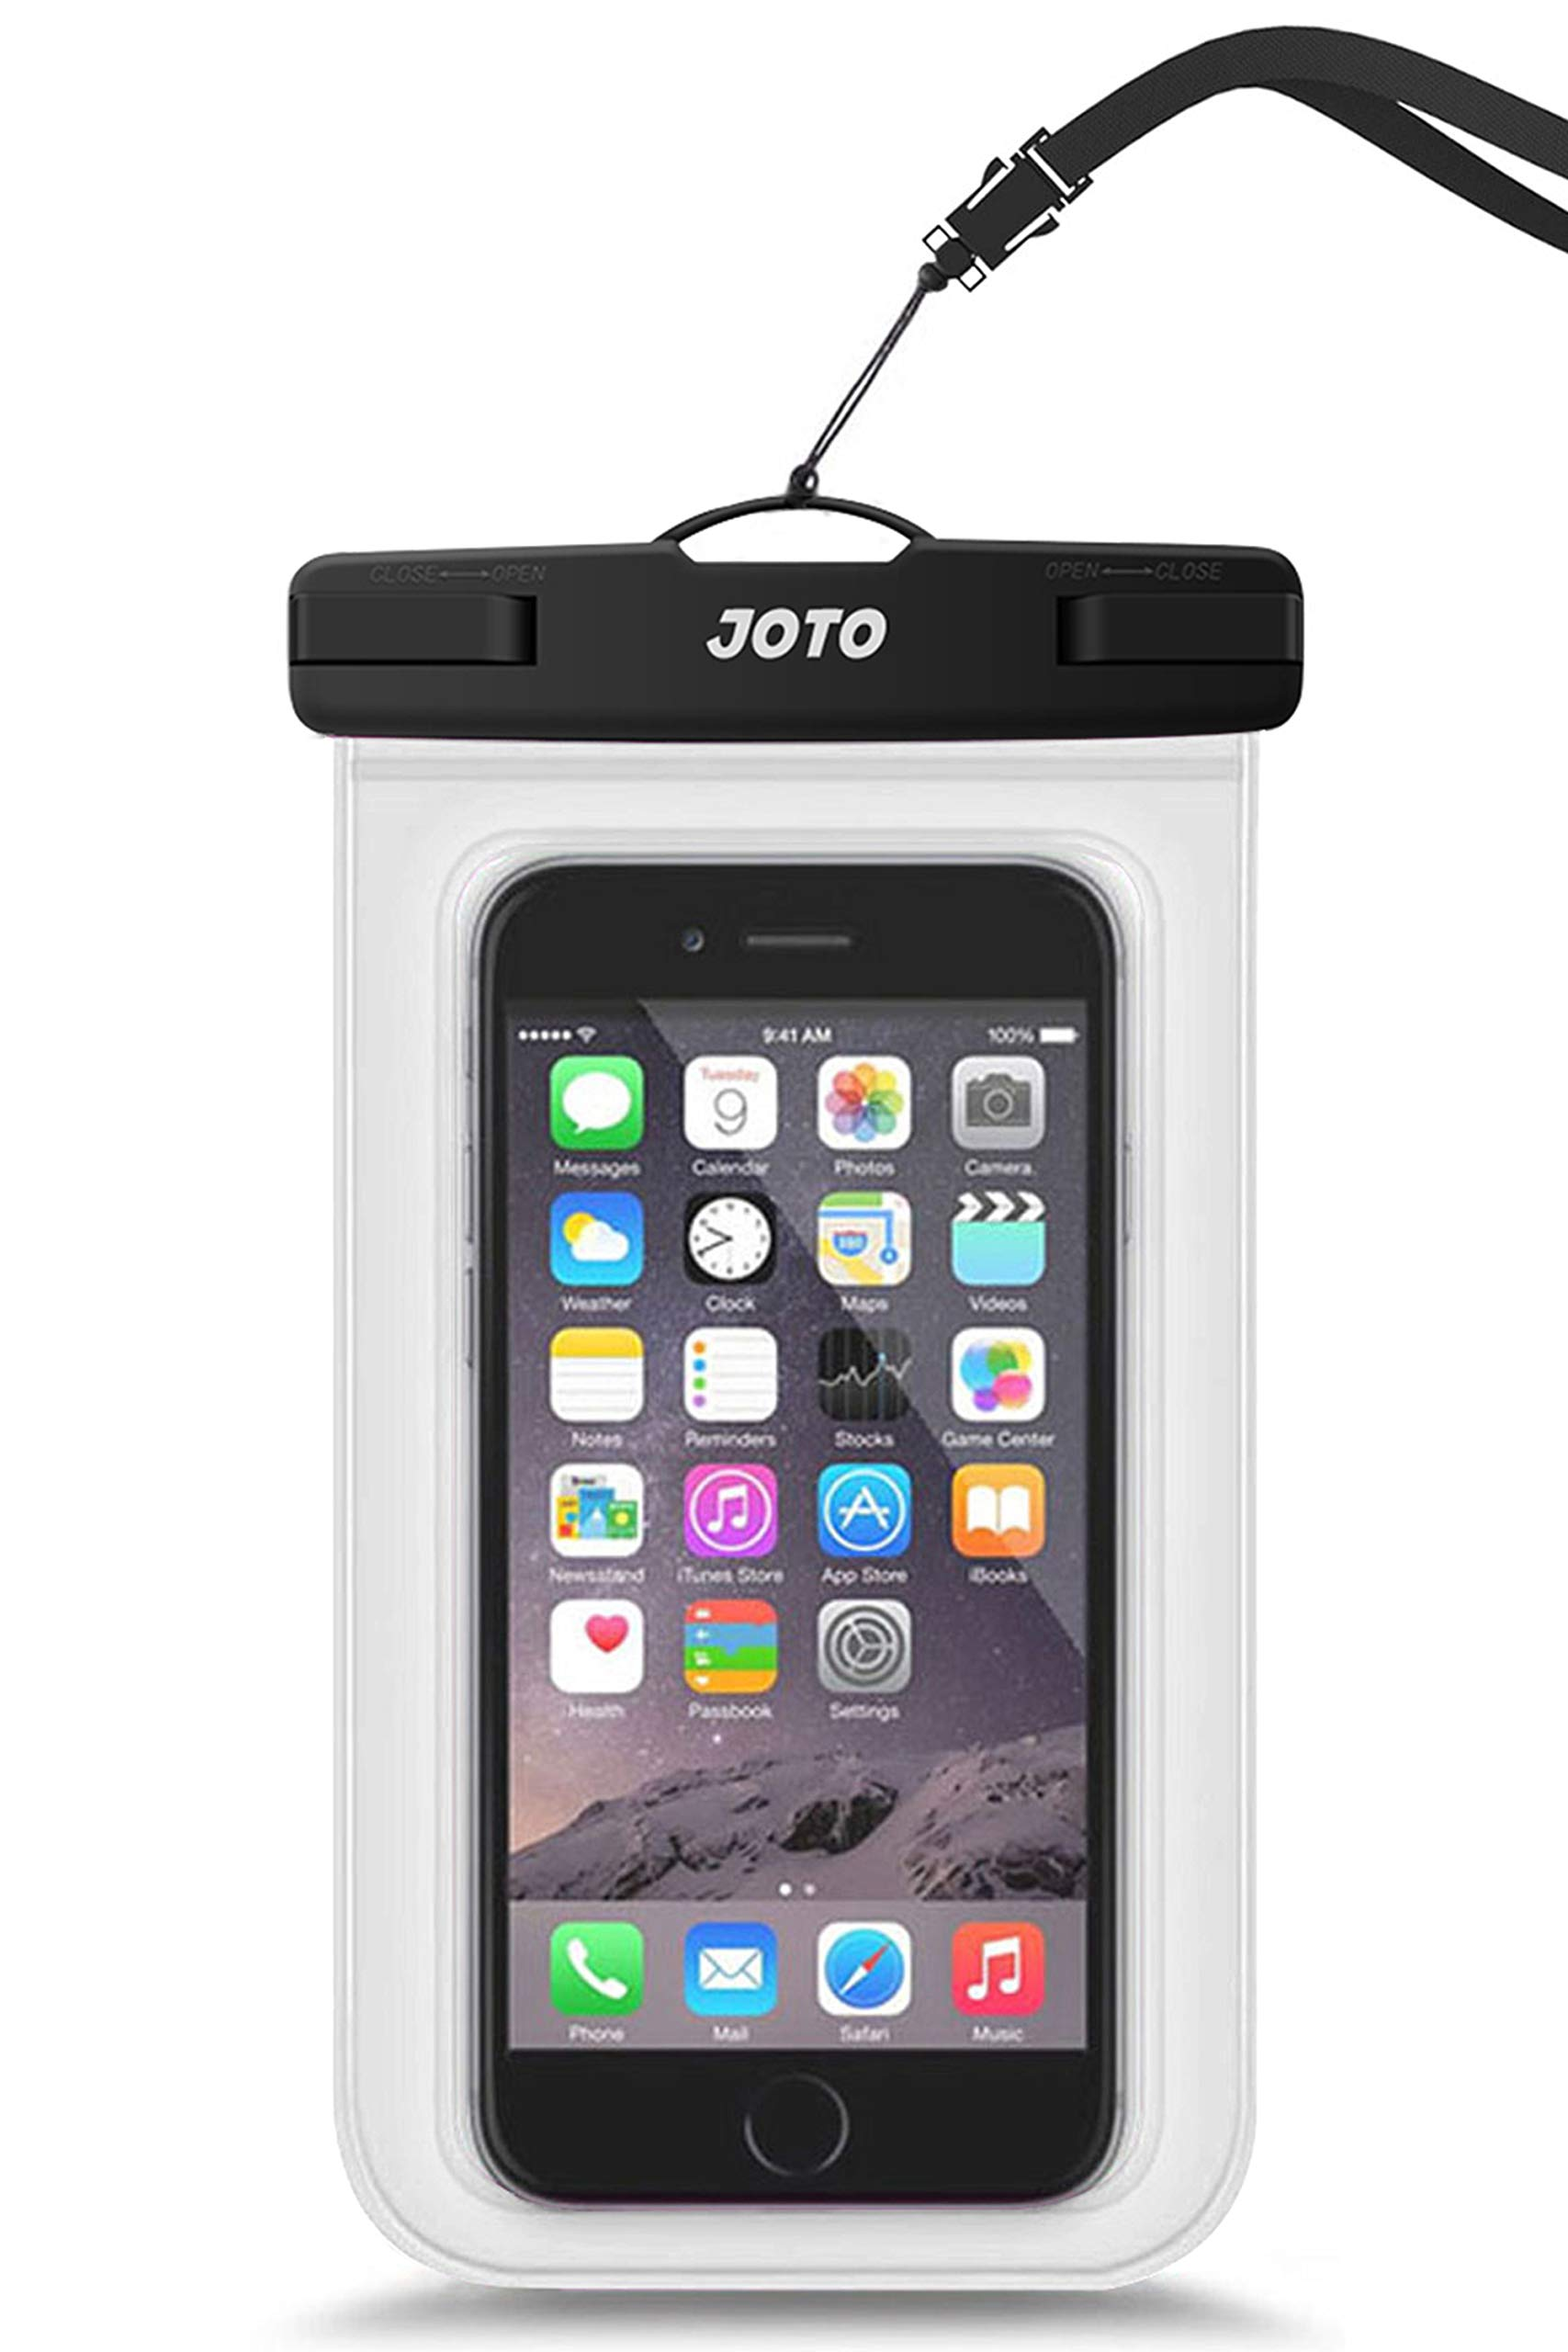 """JOTO Universal Waterproof Pouch Cellphone Dry Bag Case for iPhone 11 Pro Max Xs Max XR X 8 7 6S Plus, Galaxy S20 Ultra S20+ S10 Plus S10e S9 Plus S8/Note 10+ 10 9 8, Pixel 4 XL 3a up to 6.9"""" -Clear"""